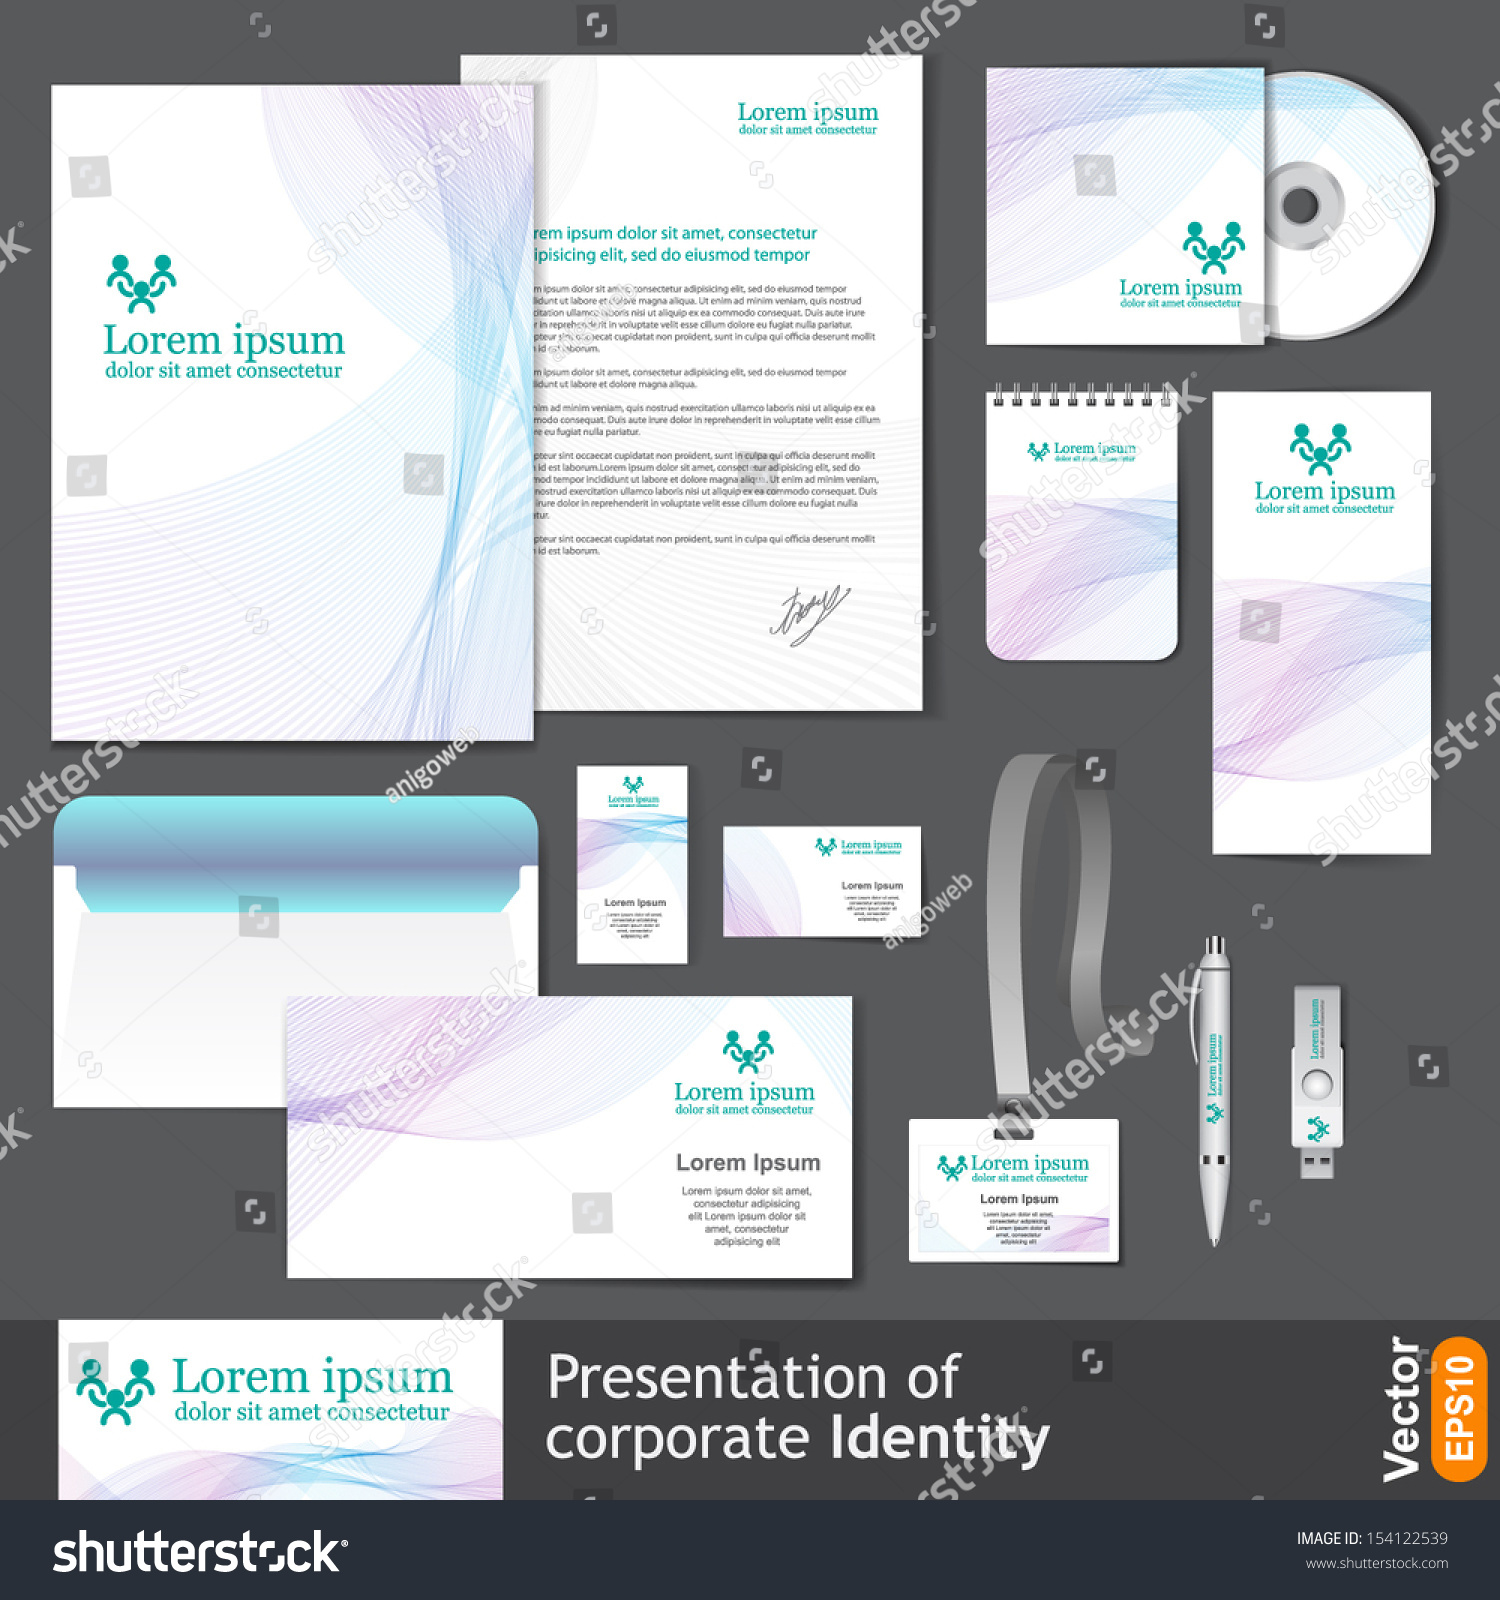 Cool 1 Page Brochure Template Thick 1 Year Experience Resume Format For Java Solid 1 Year Experience Resume Format For Software Developer 10 Steps To Creating A Resume Old 10 Tips To Making A Resume Pink1099 Form Template Light Corporate Identity Template With Wave Elements For Medical ..